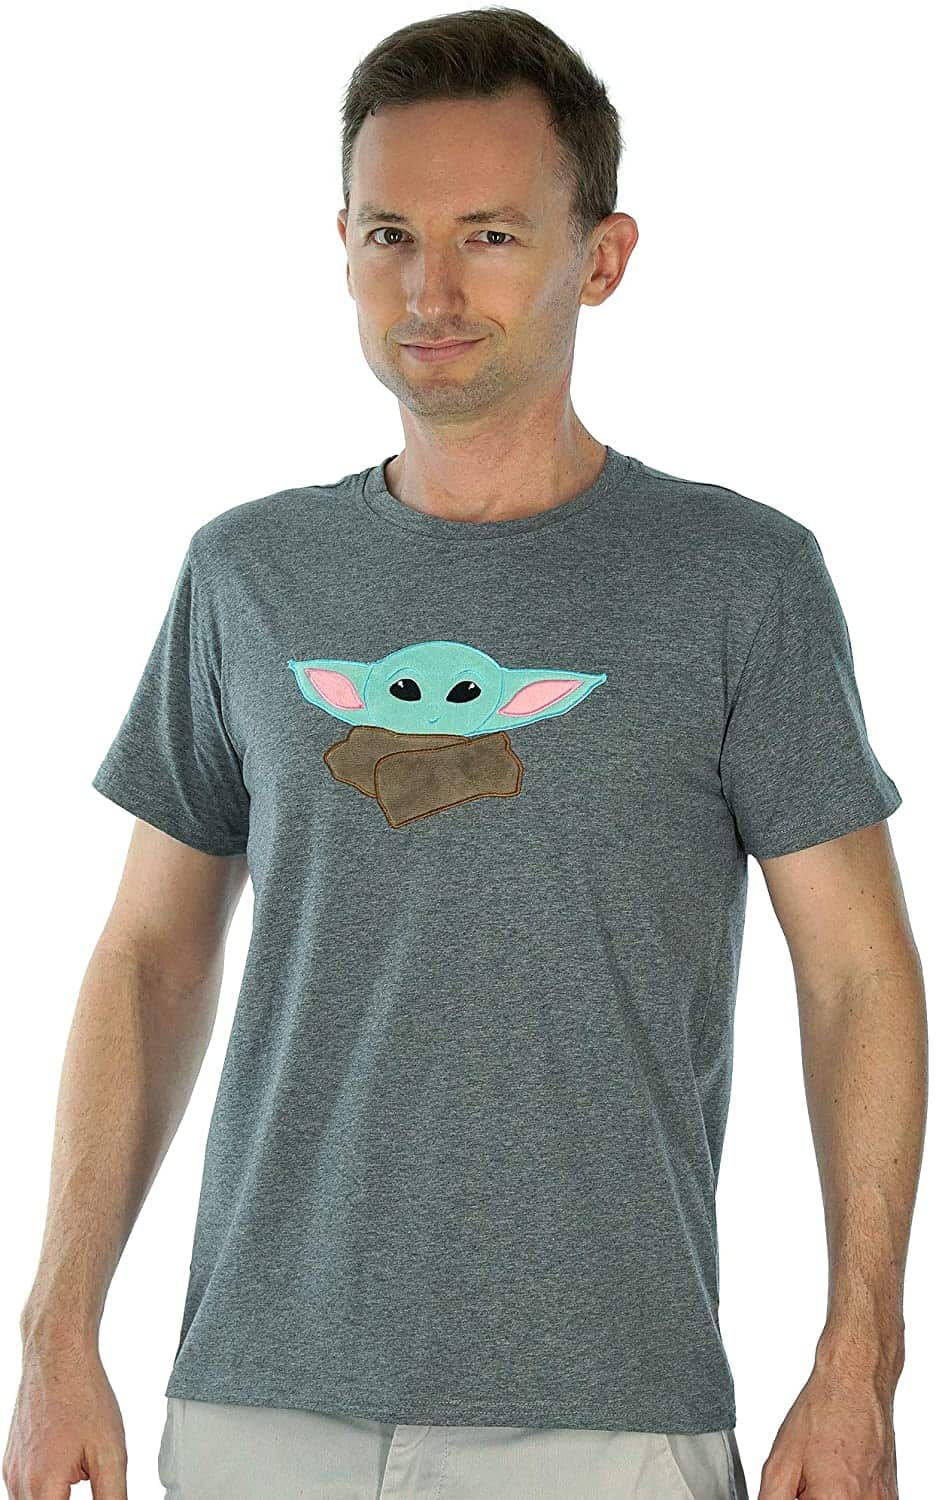 Comfy Camper Baby Green Space Alien Embroidered Character Shirt for Kids